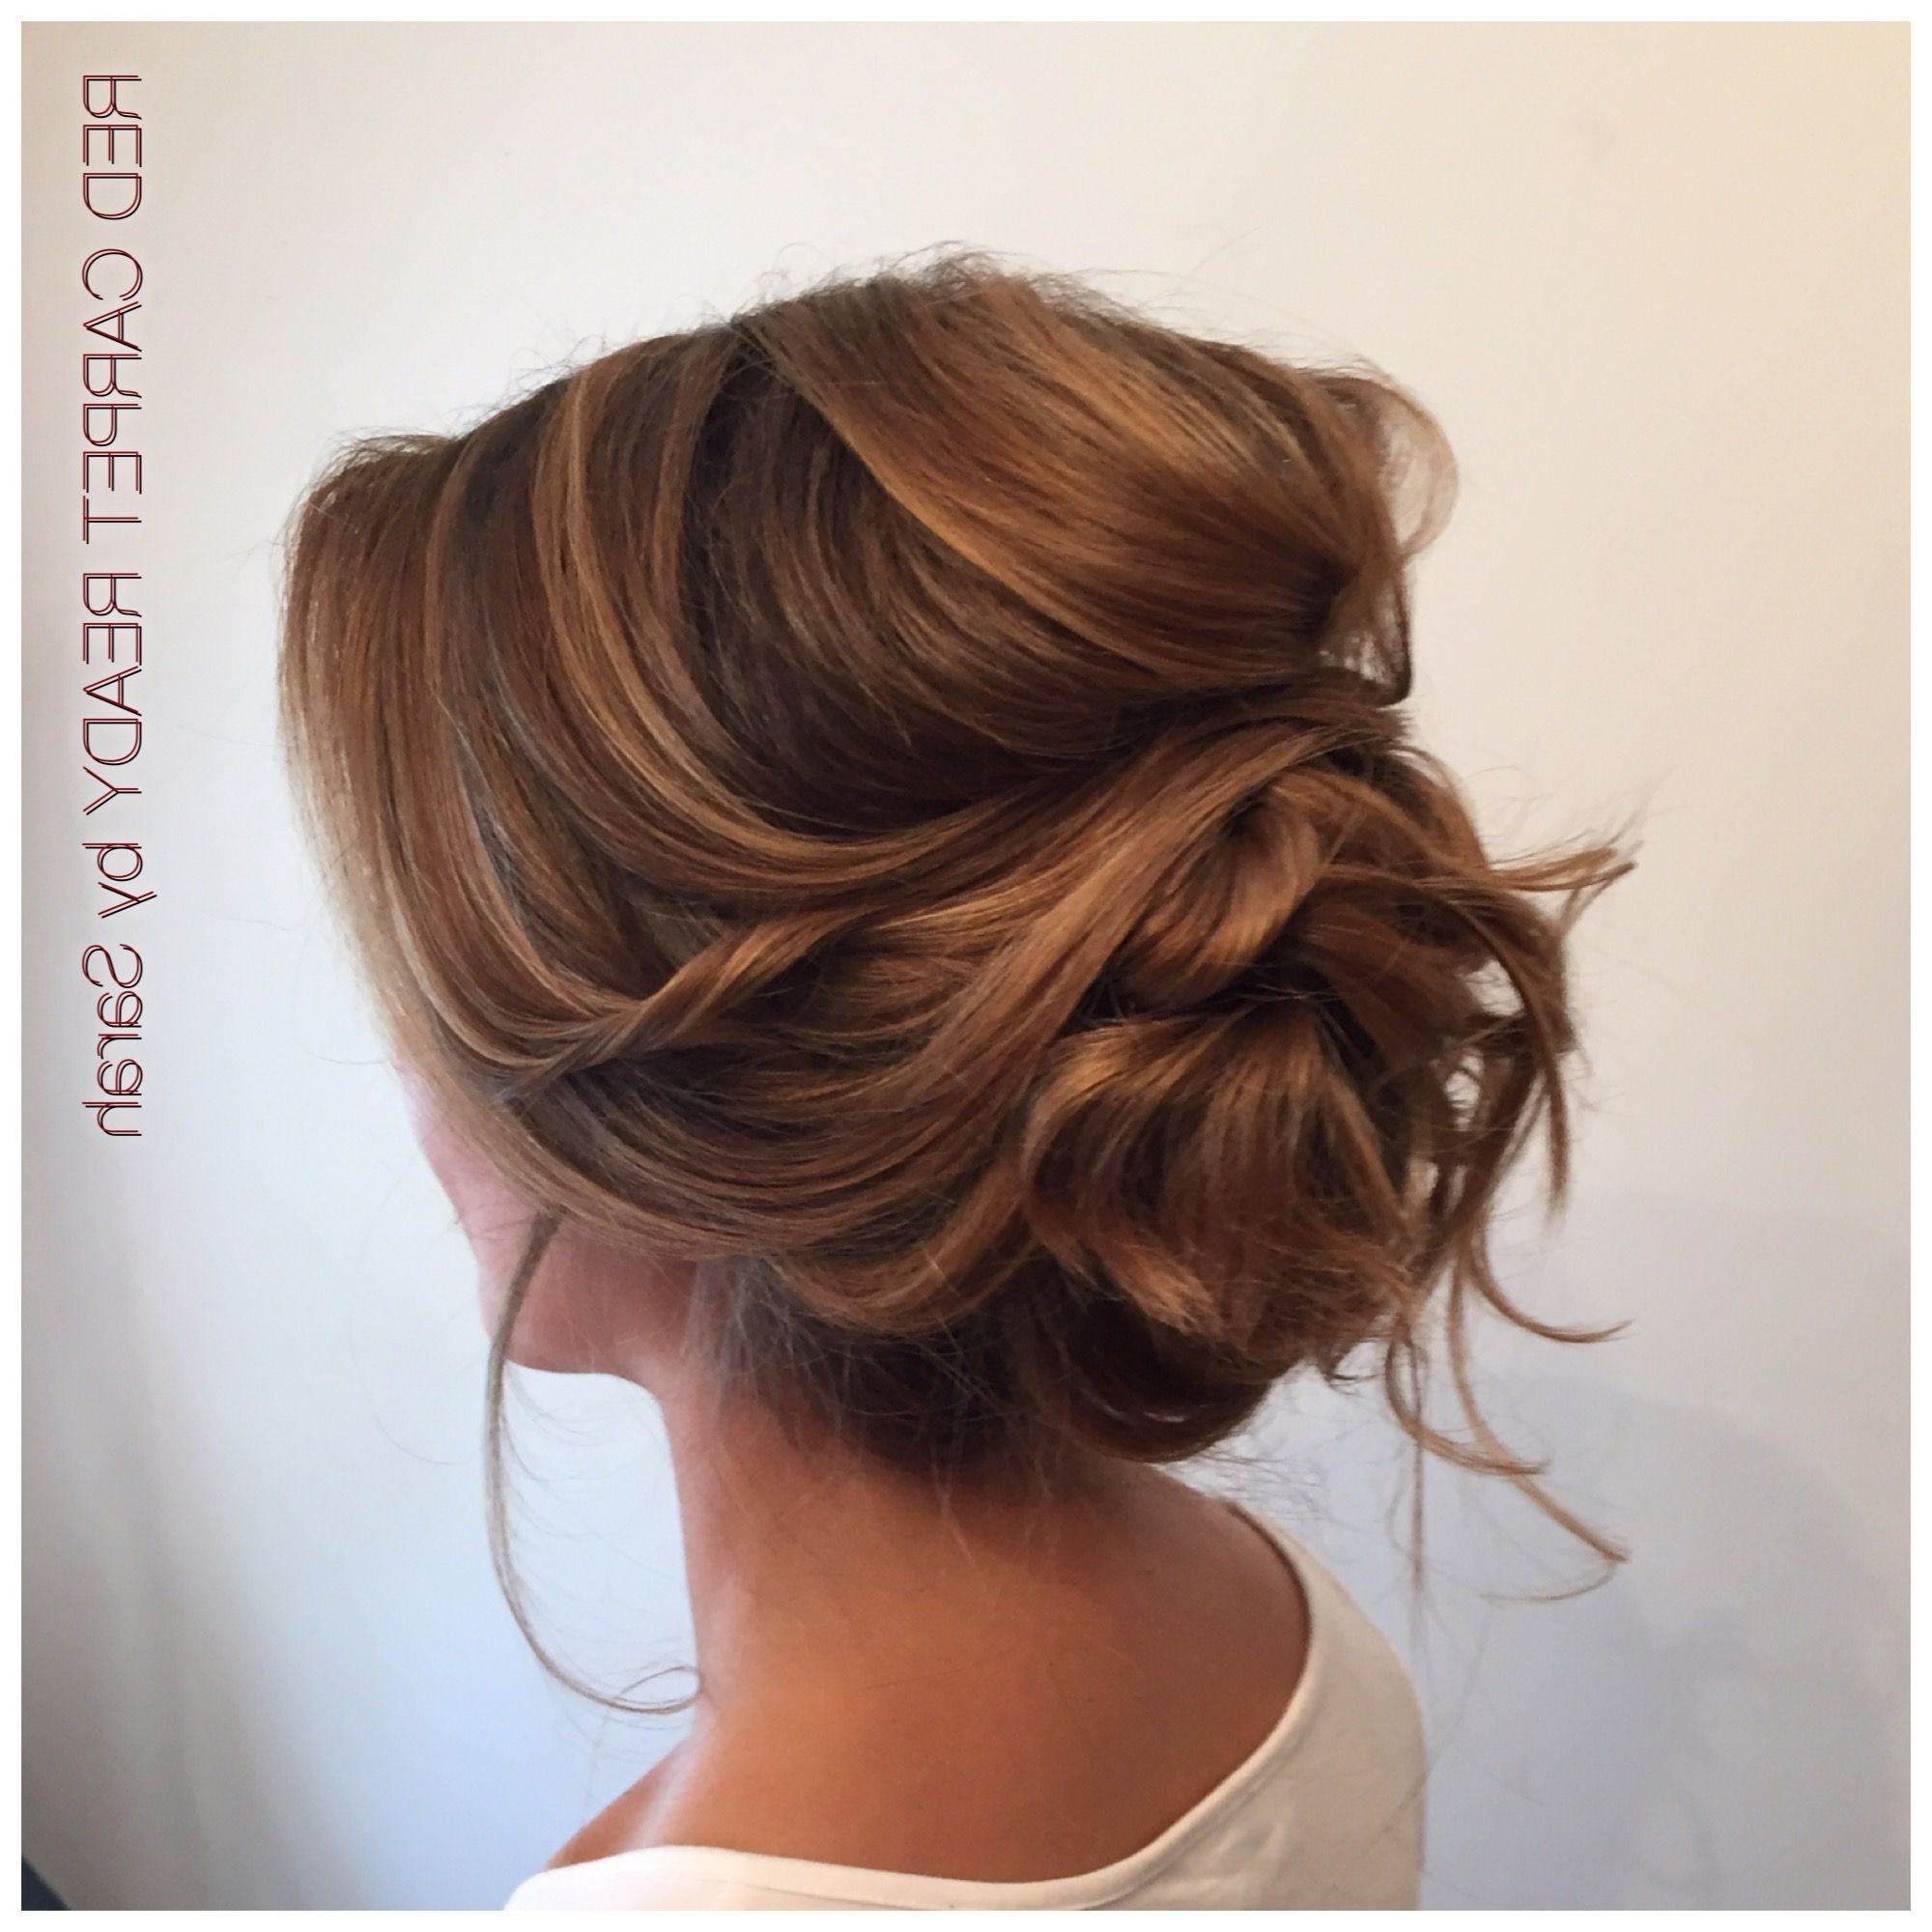 Peinados Y/o Tocados Pertaining To Current Wedding Hairstyles For Long Low Bun Hair (View 12 of 15)